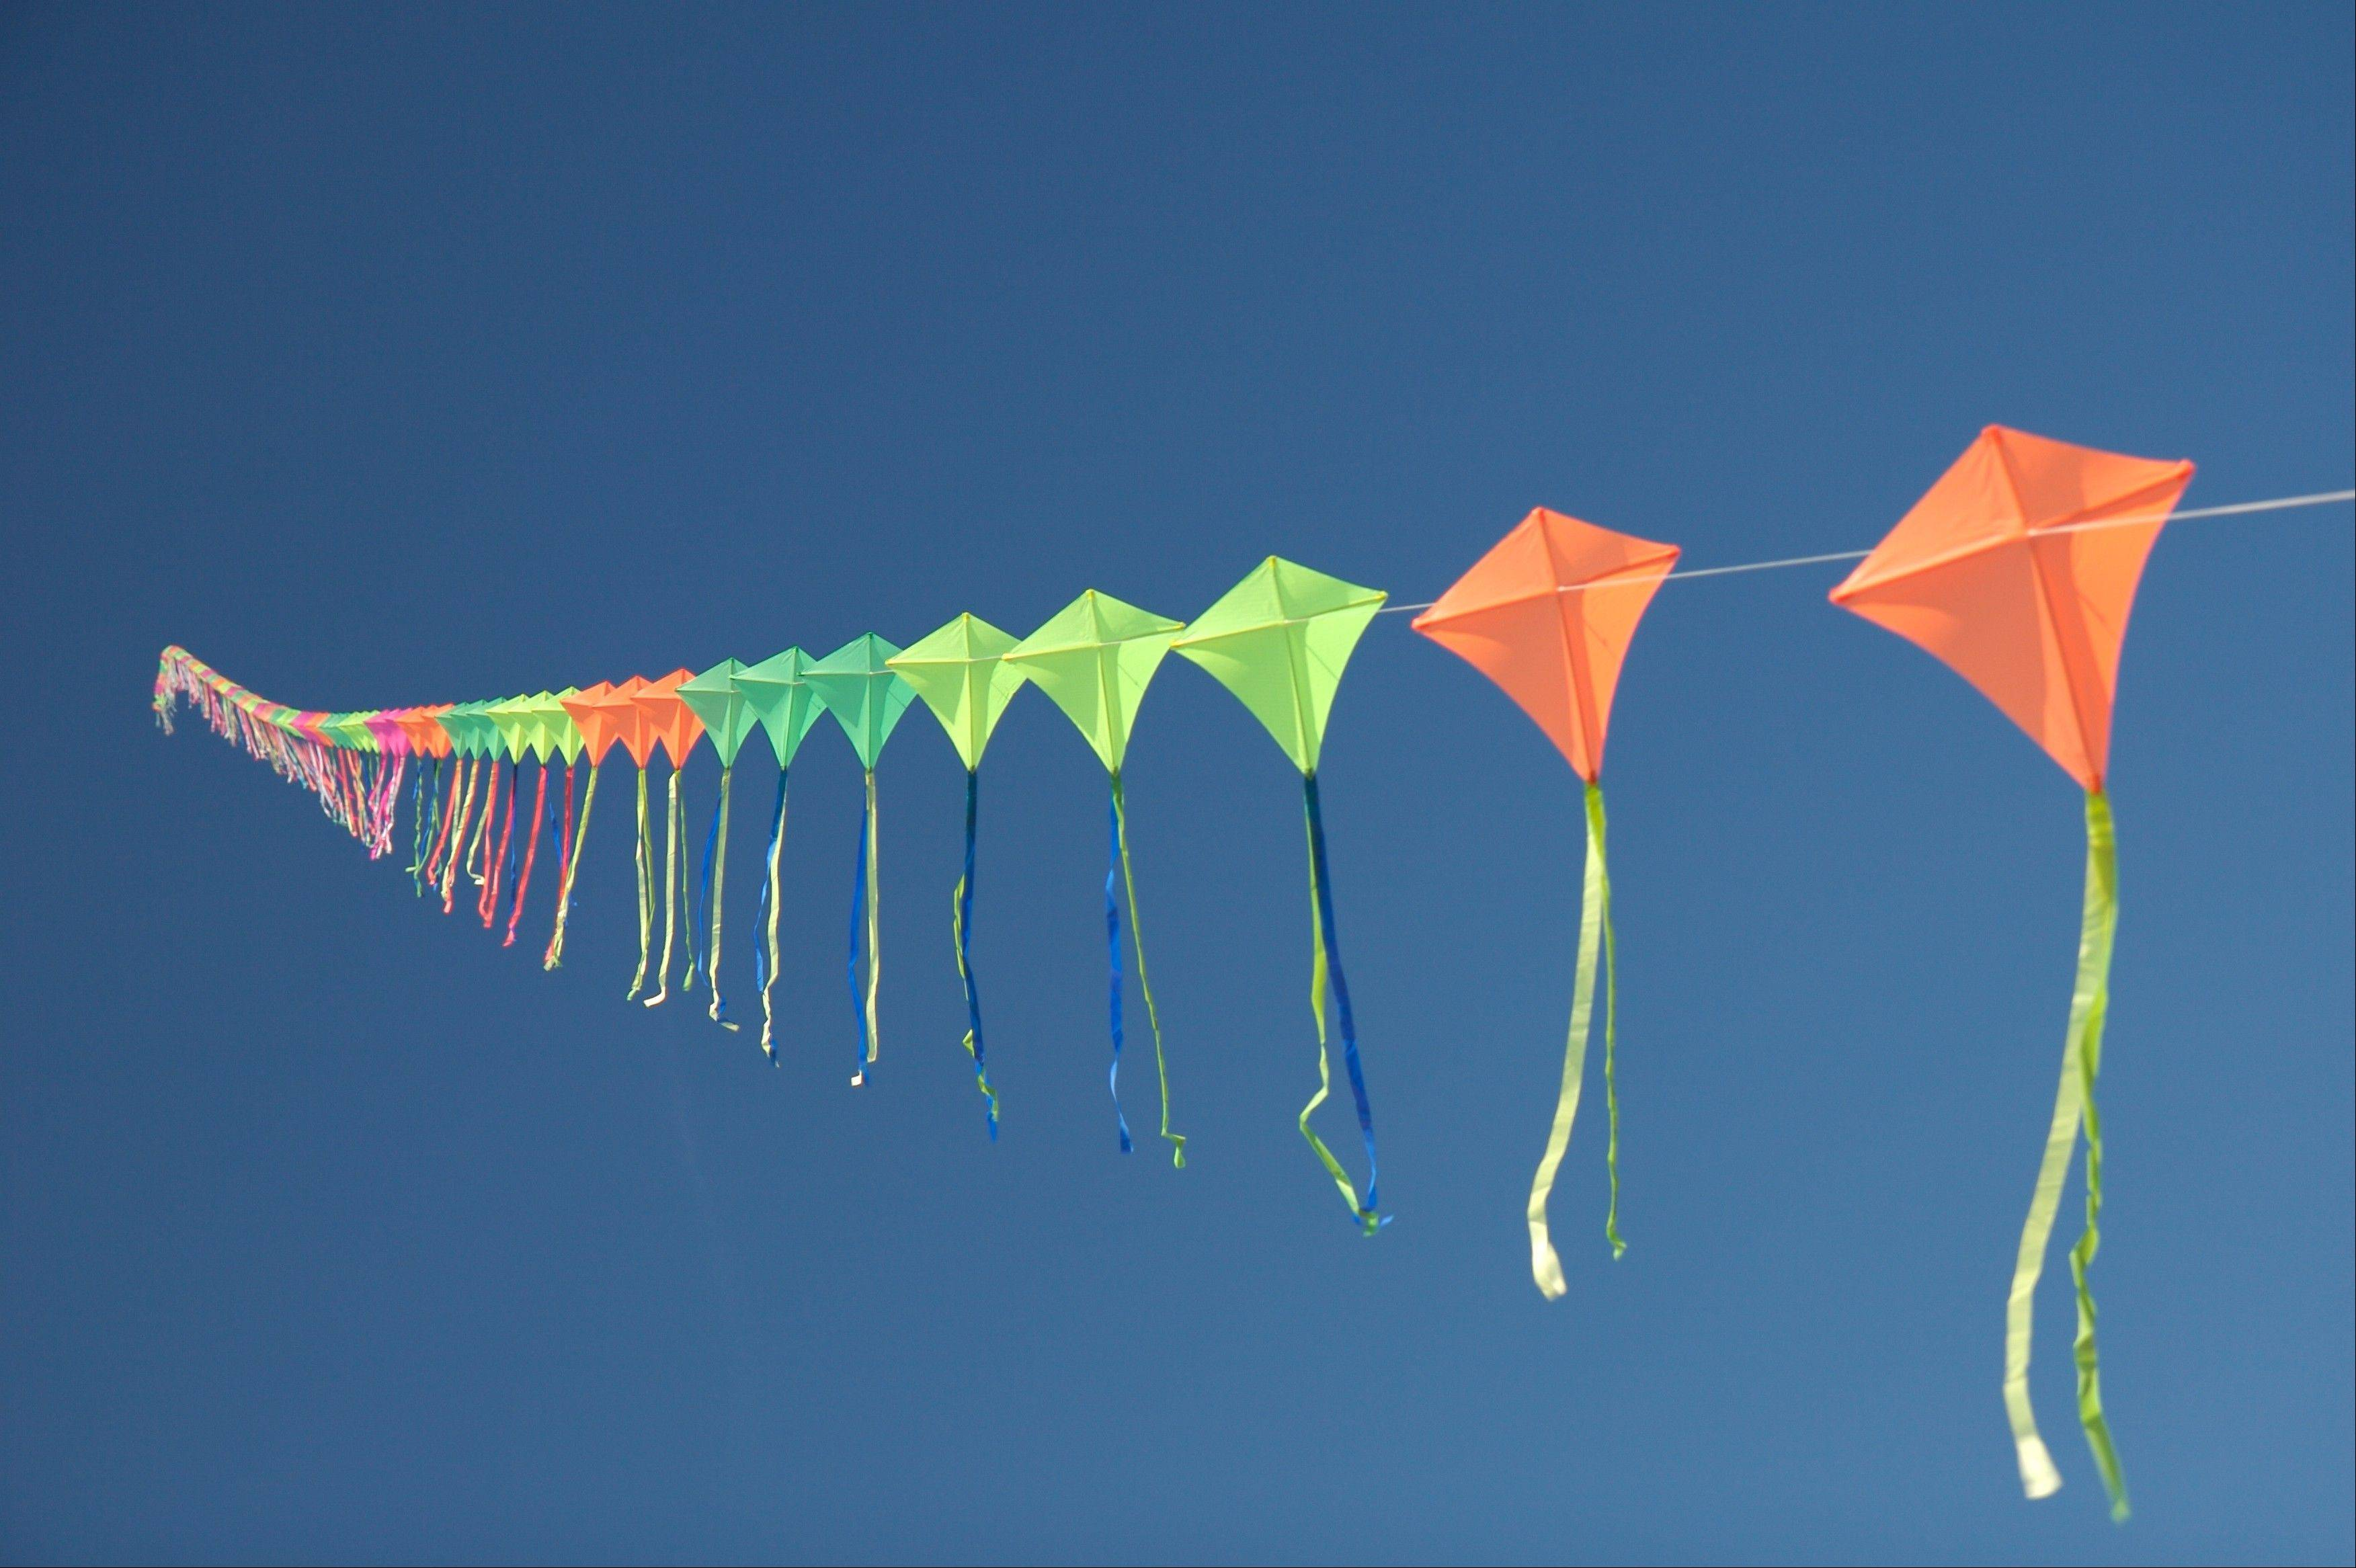 Youngsters are invited to the free Kite-Making program Saturday at the Great Lakes Naval Museum.